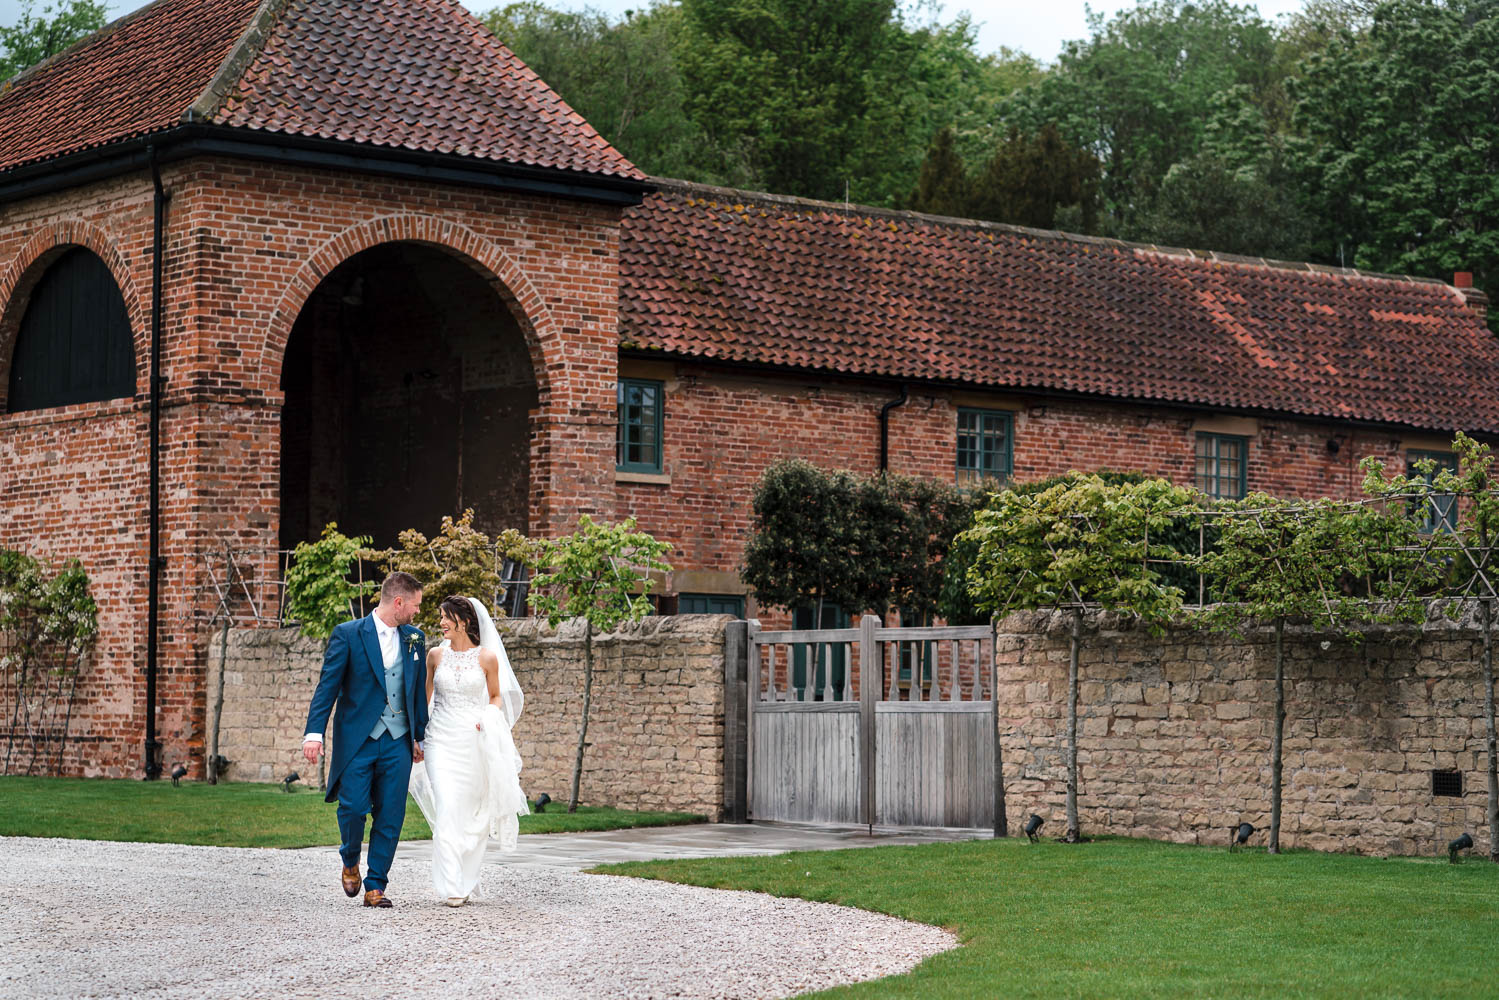 Bride & groom walking outside Hazel Gap Barn - Exclusive wedding venue in Nottinghamshire